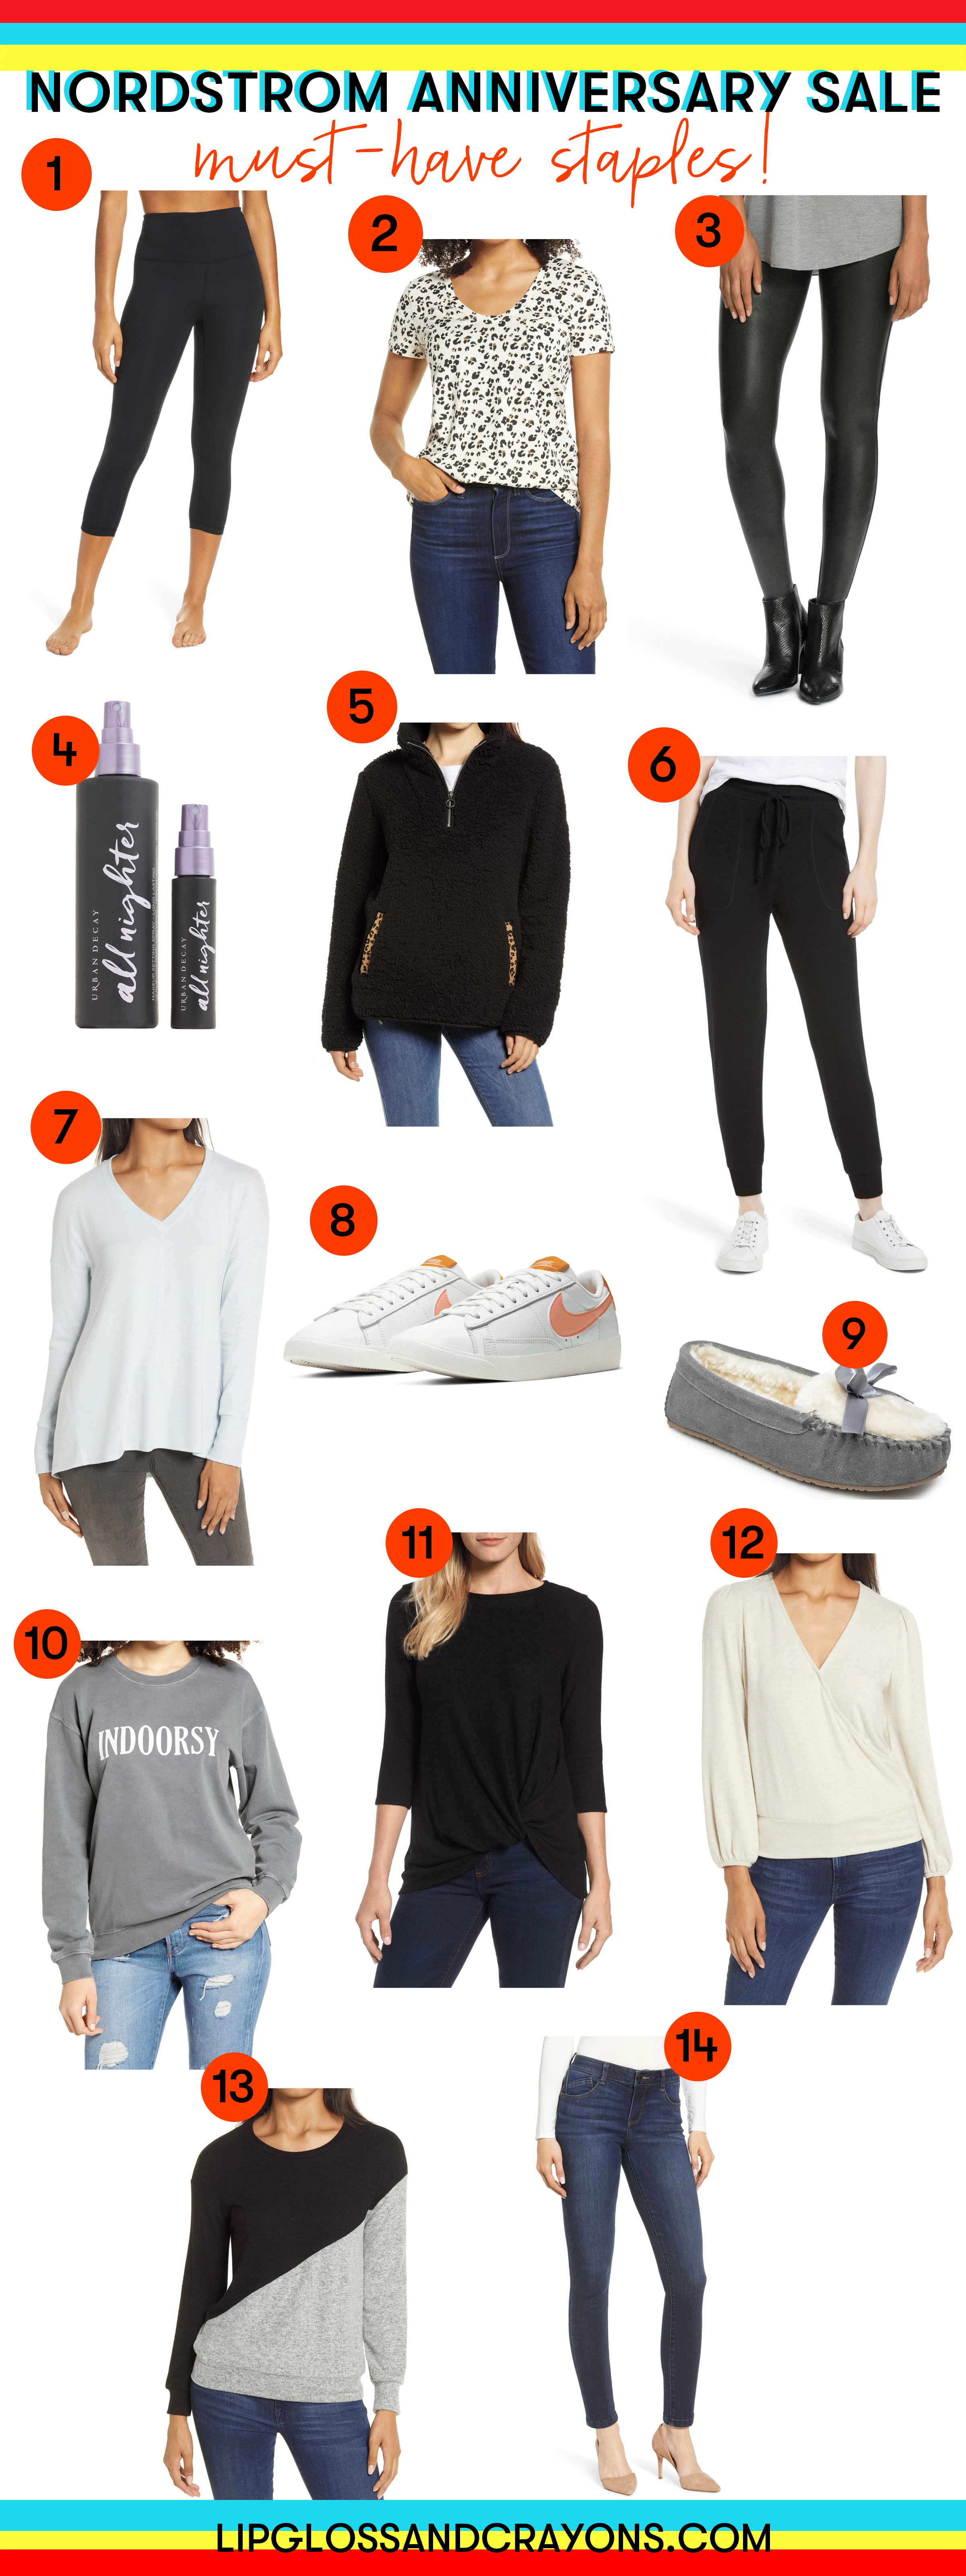 Planning to shop the Nordstrom Anniversary Sale? These are my must have fall wardrobe staples!